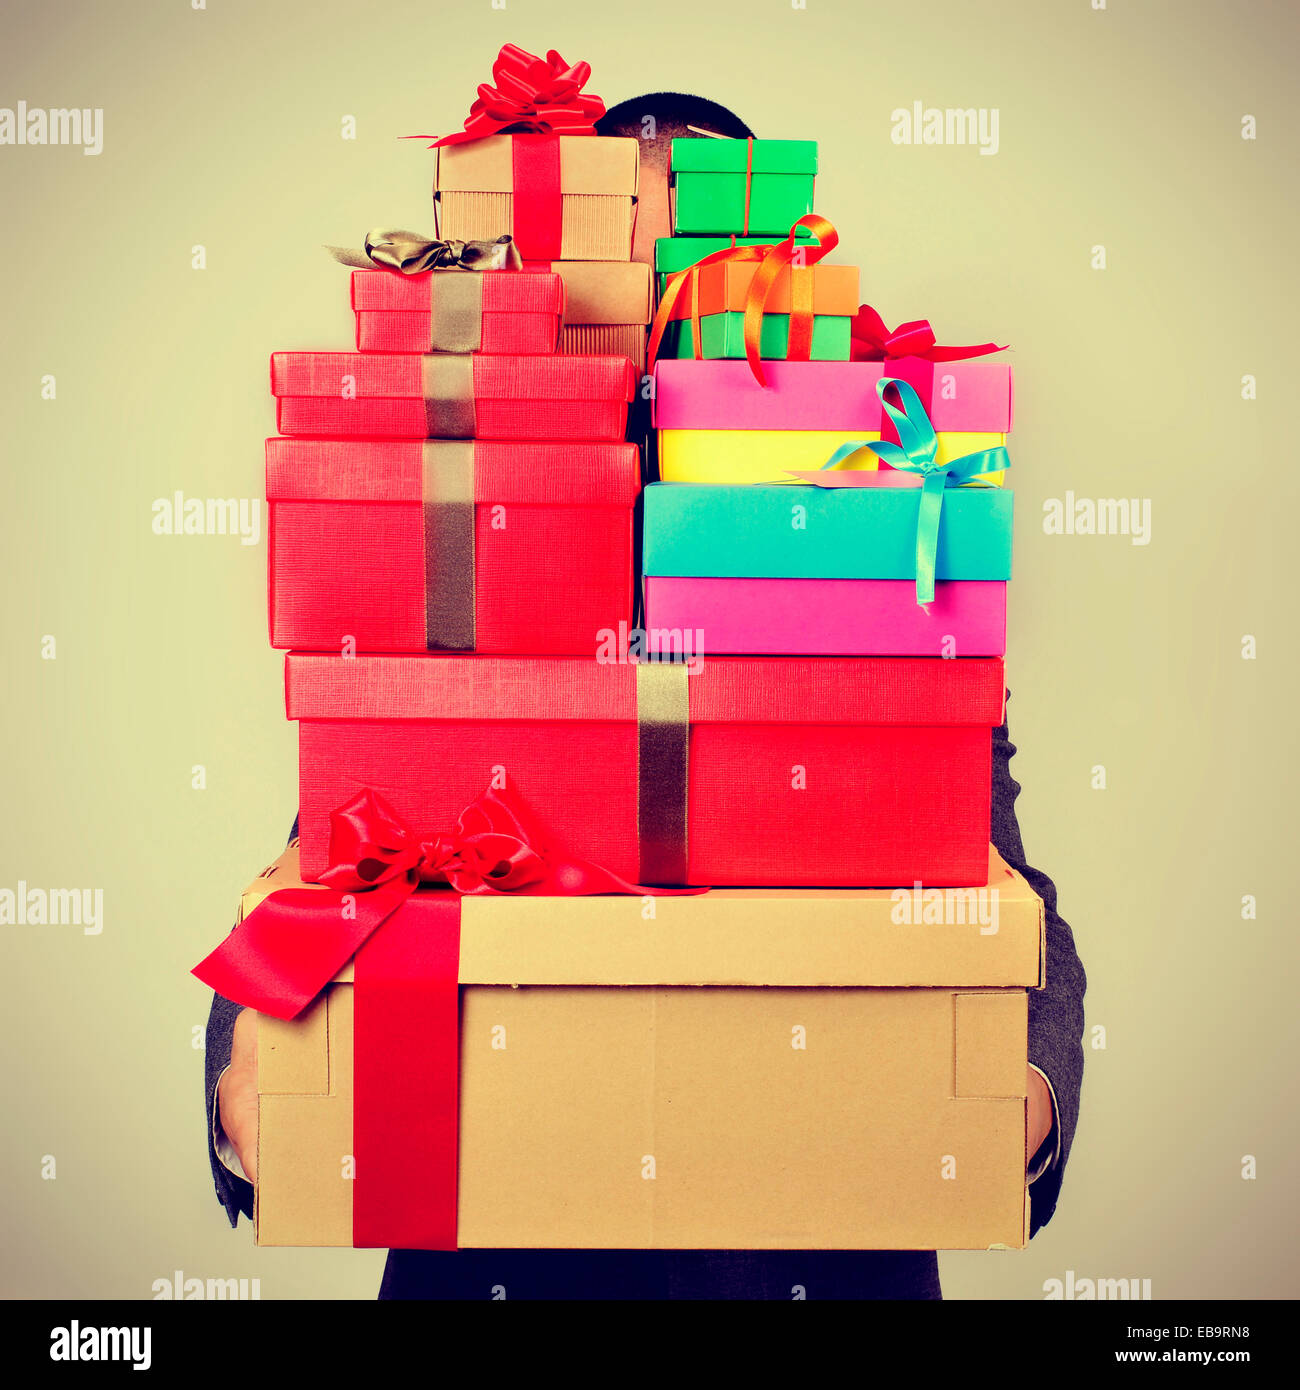 a young man in suit carrying a pile of gift boxes of different colors, with a filter effect - Stock Image